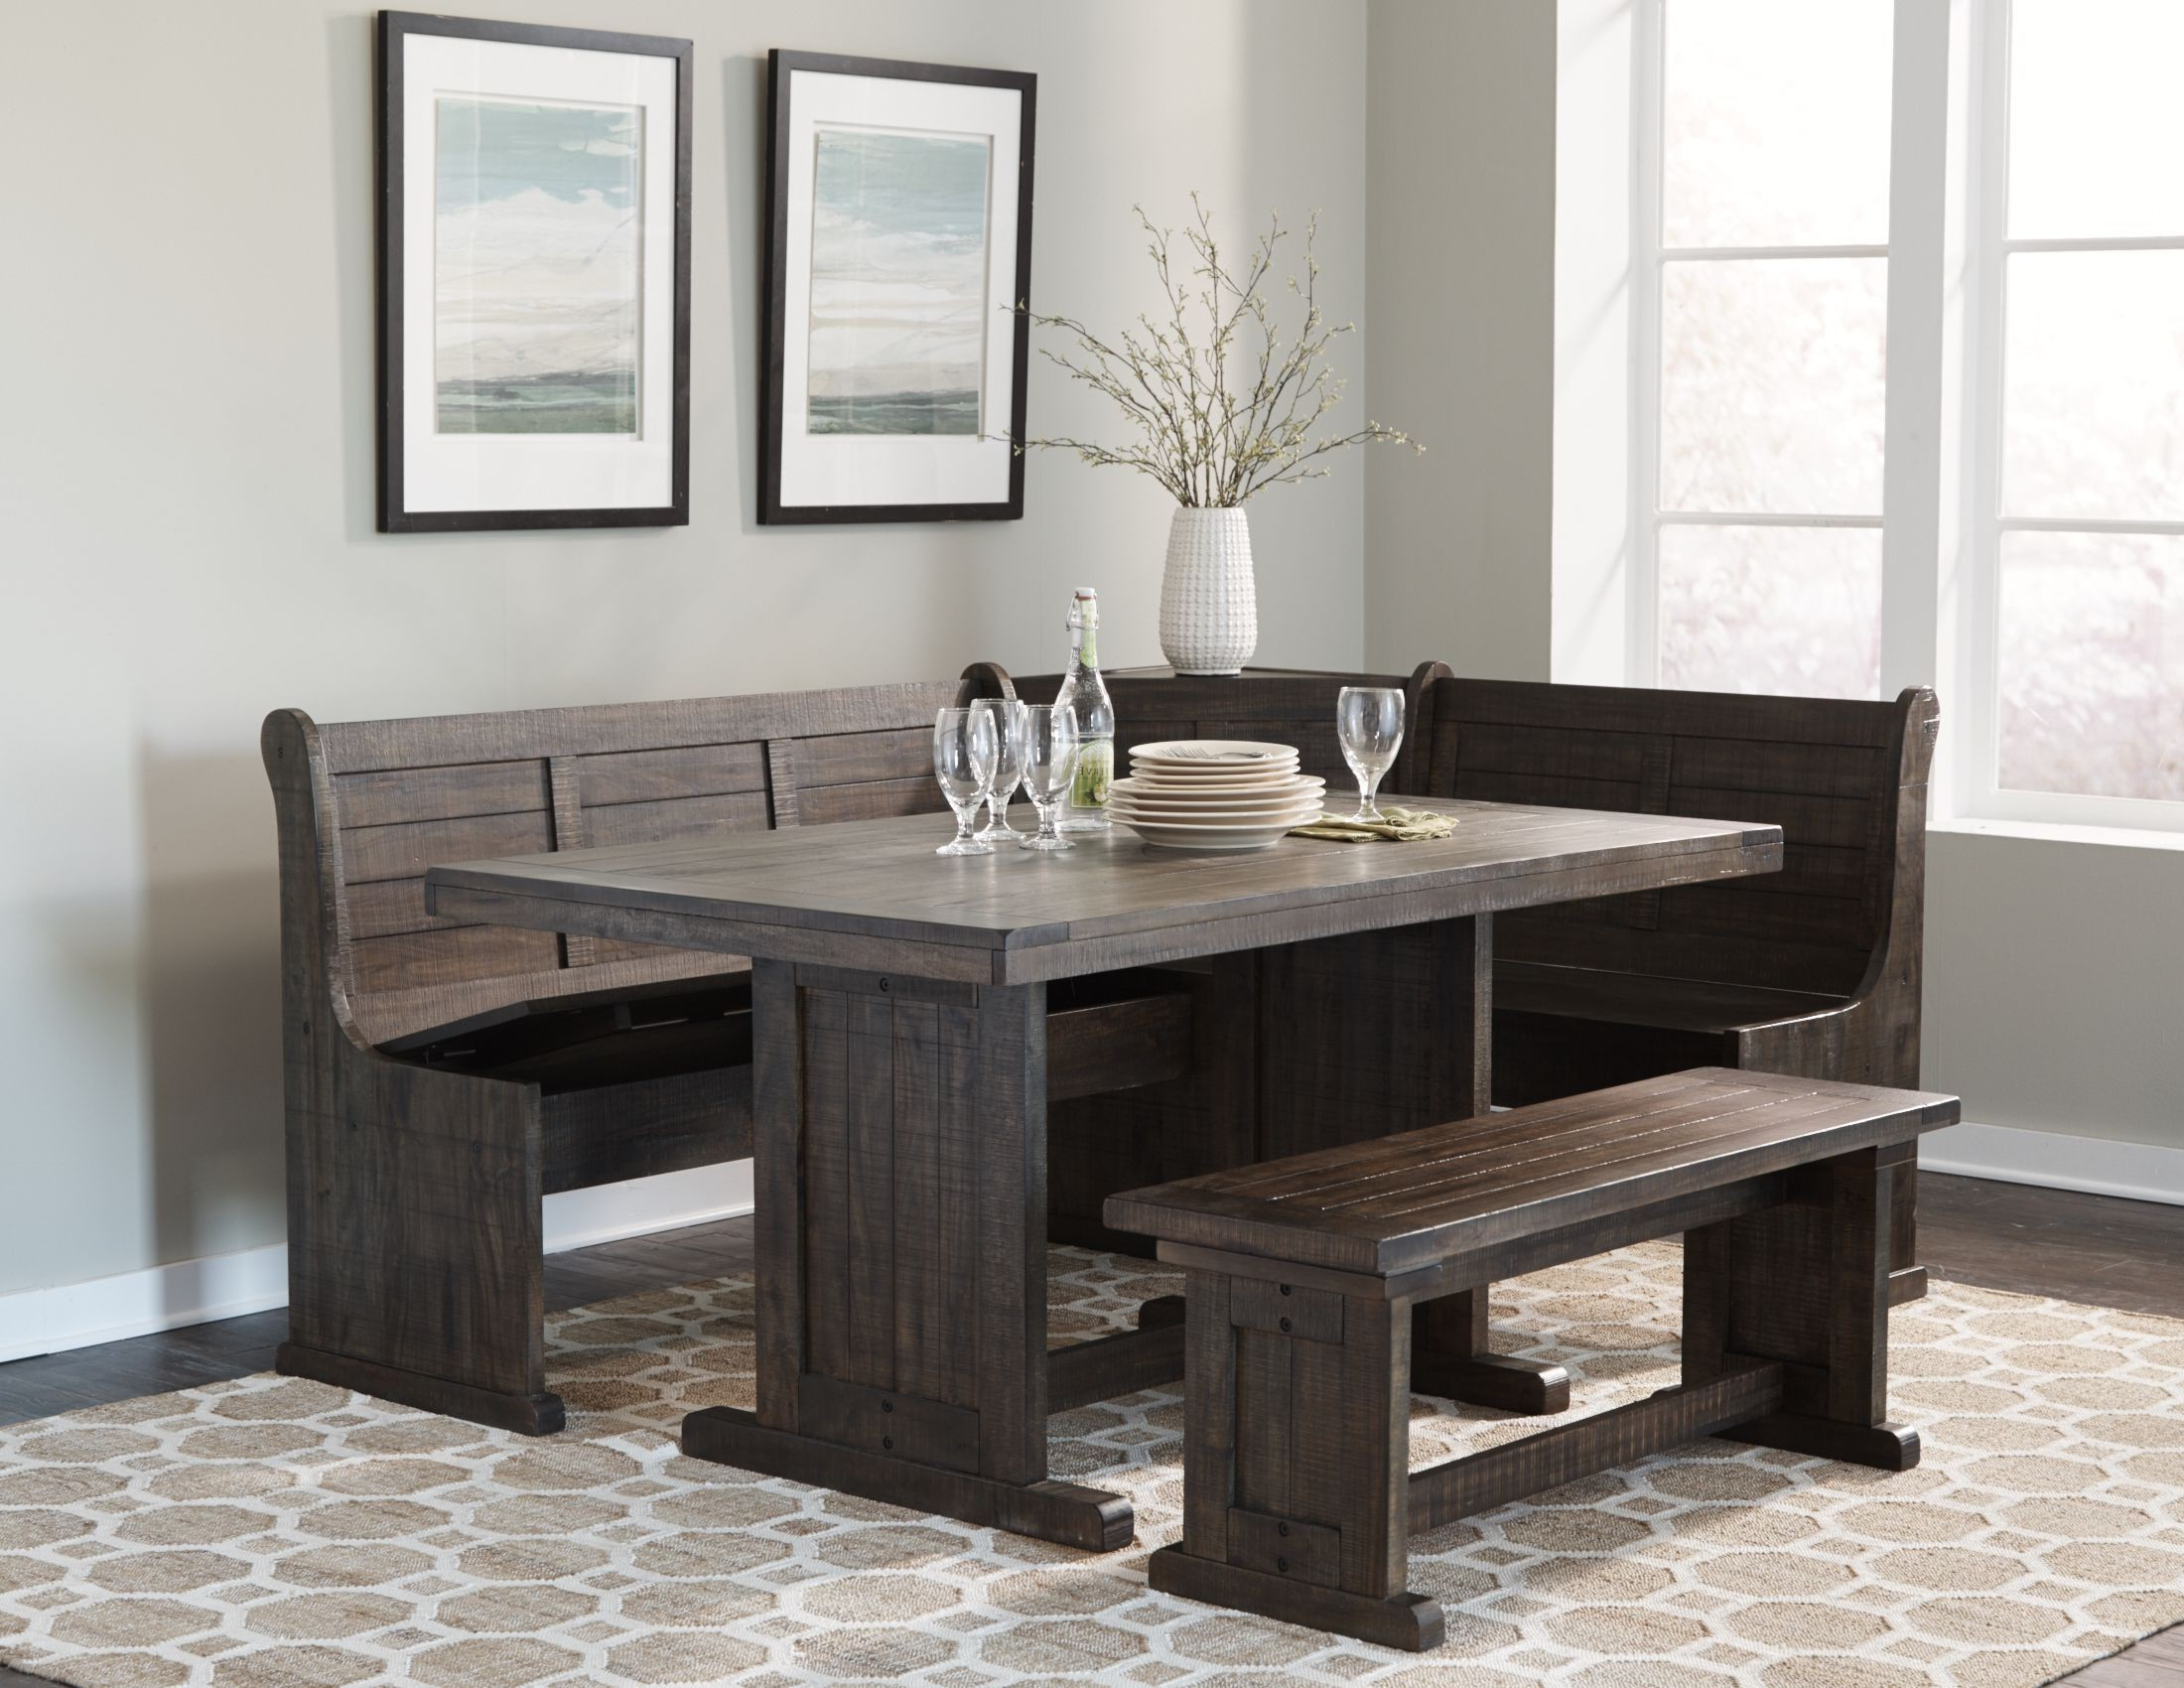 Homestead Tobacco Leaf Breakfast Nook Set Pertaining To Most Recently Released Liles 5 Piece Breakfast Nook Dining Sets (View 9 of 20)